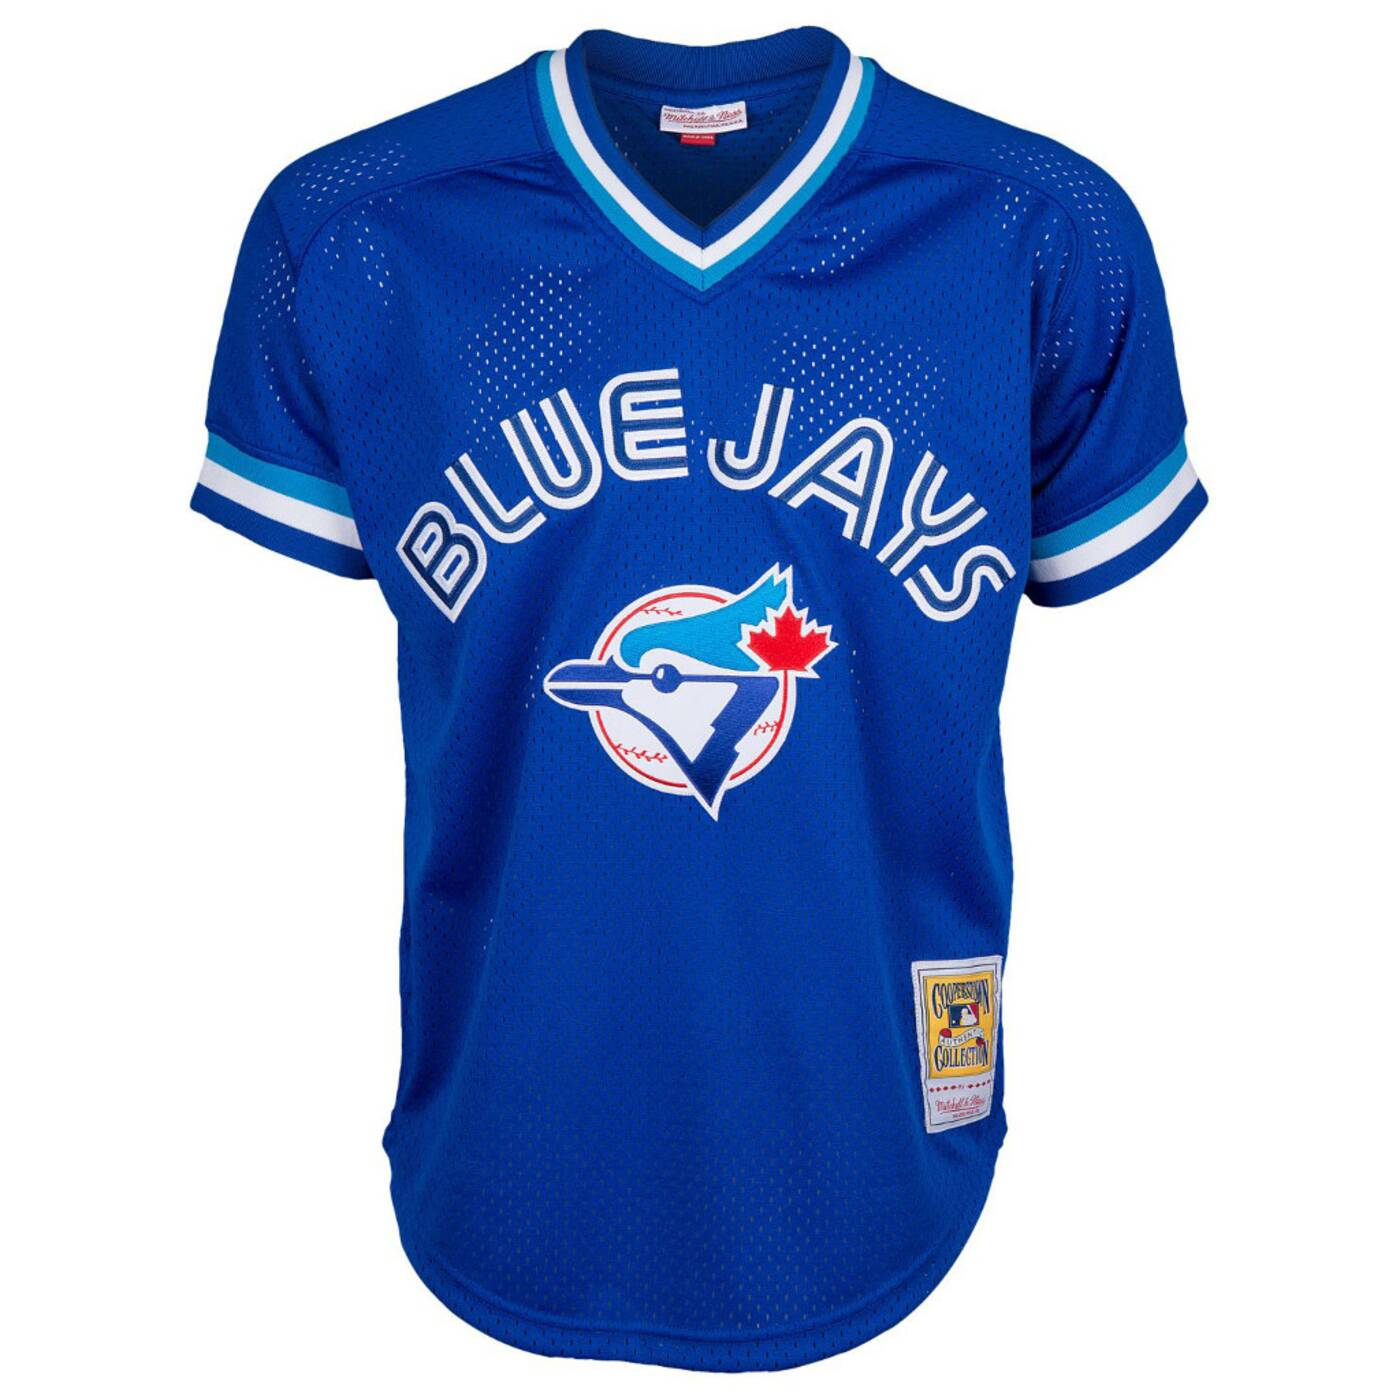 10 stores to buy Blue Jays clothing in Toronto 4bf4b8a42